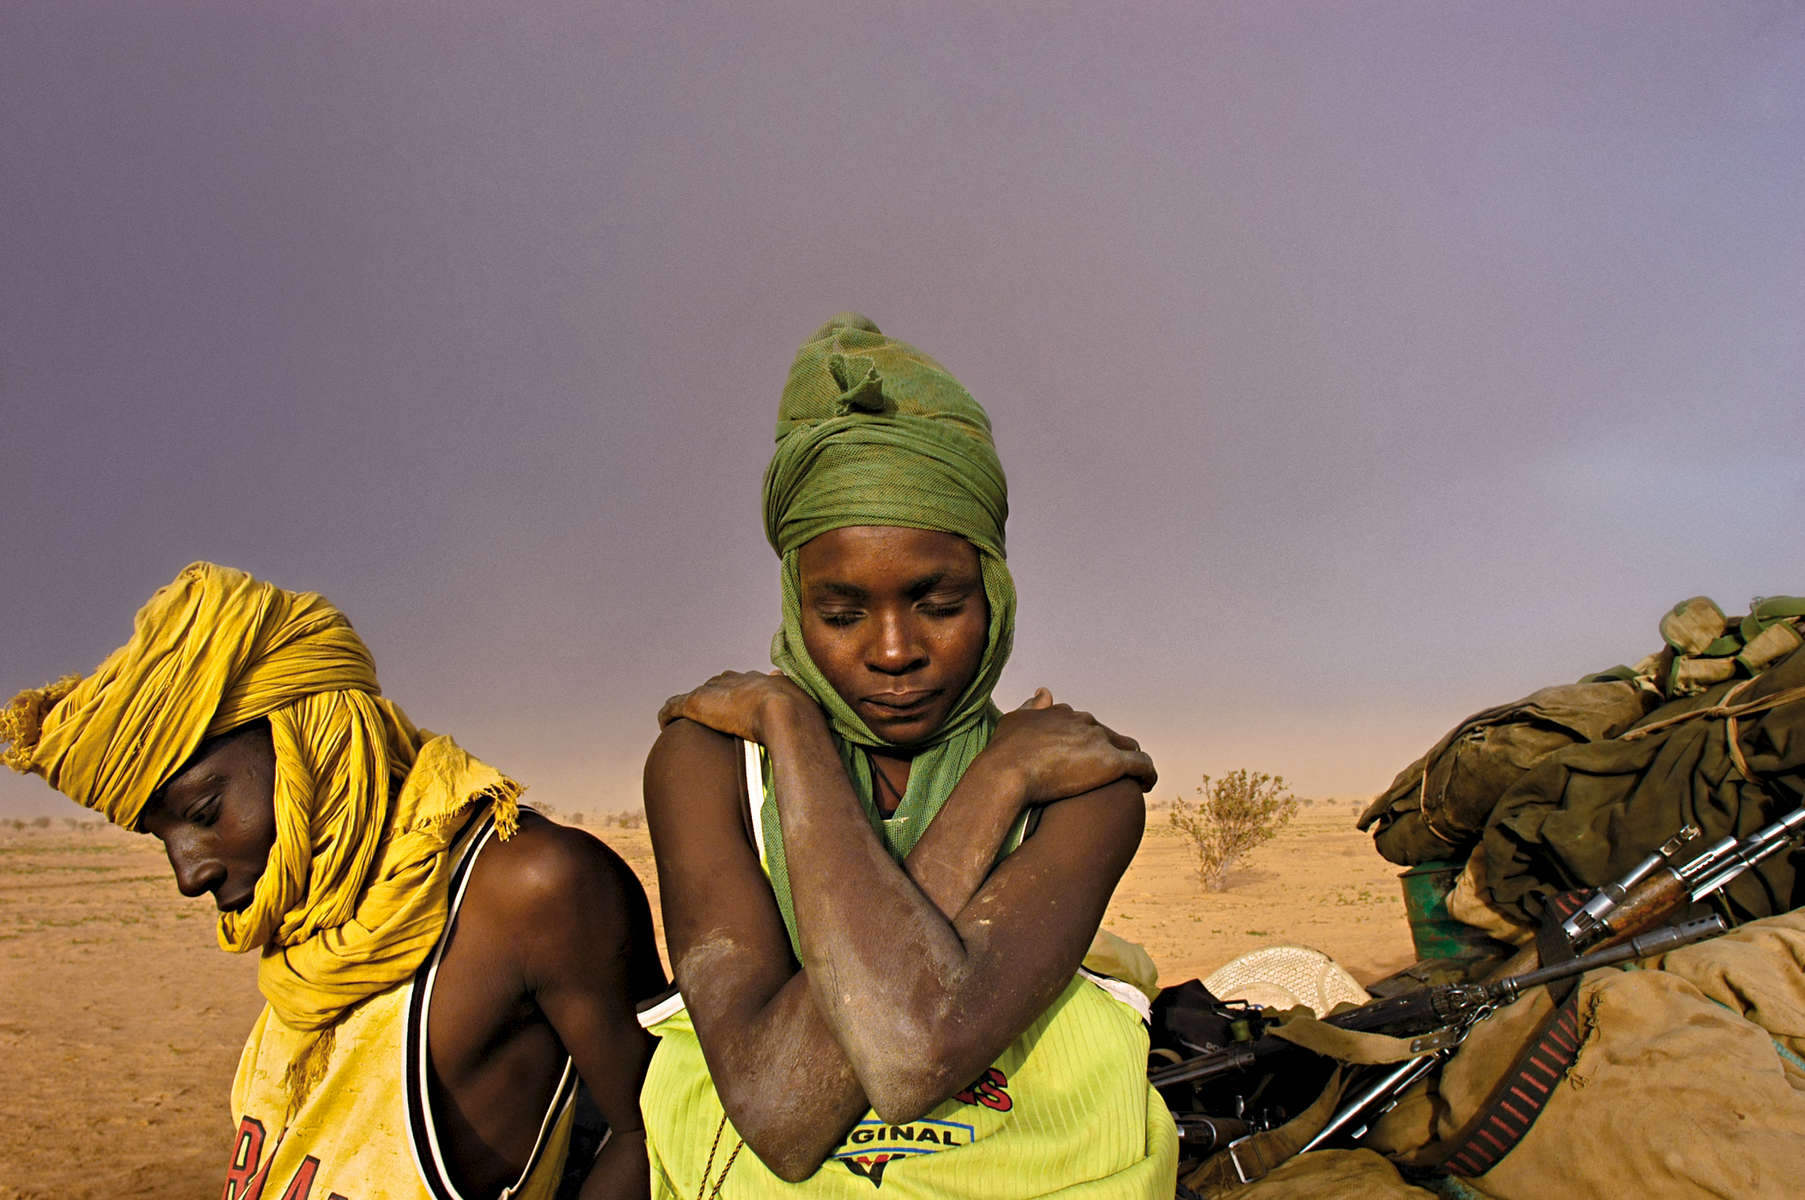 Soldiers with the Sudanese People's Liberation Army sit by their truck, waitingfor it to be repaired, as a sandstorm approaches in Darfur, Sudan, August 2004.